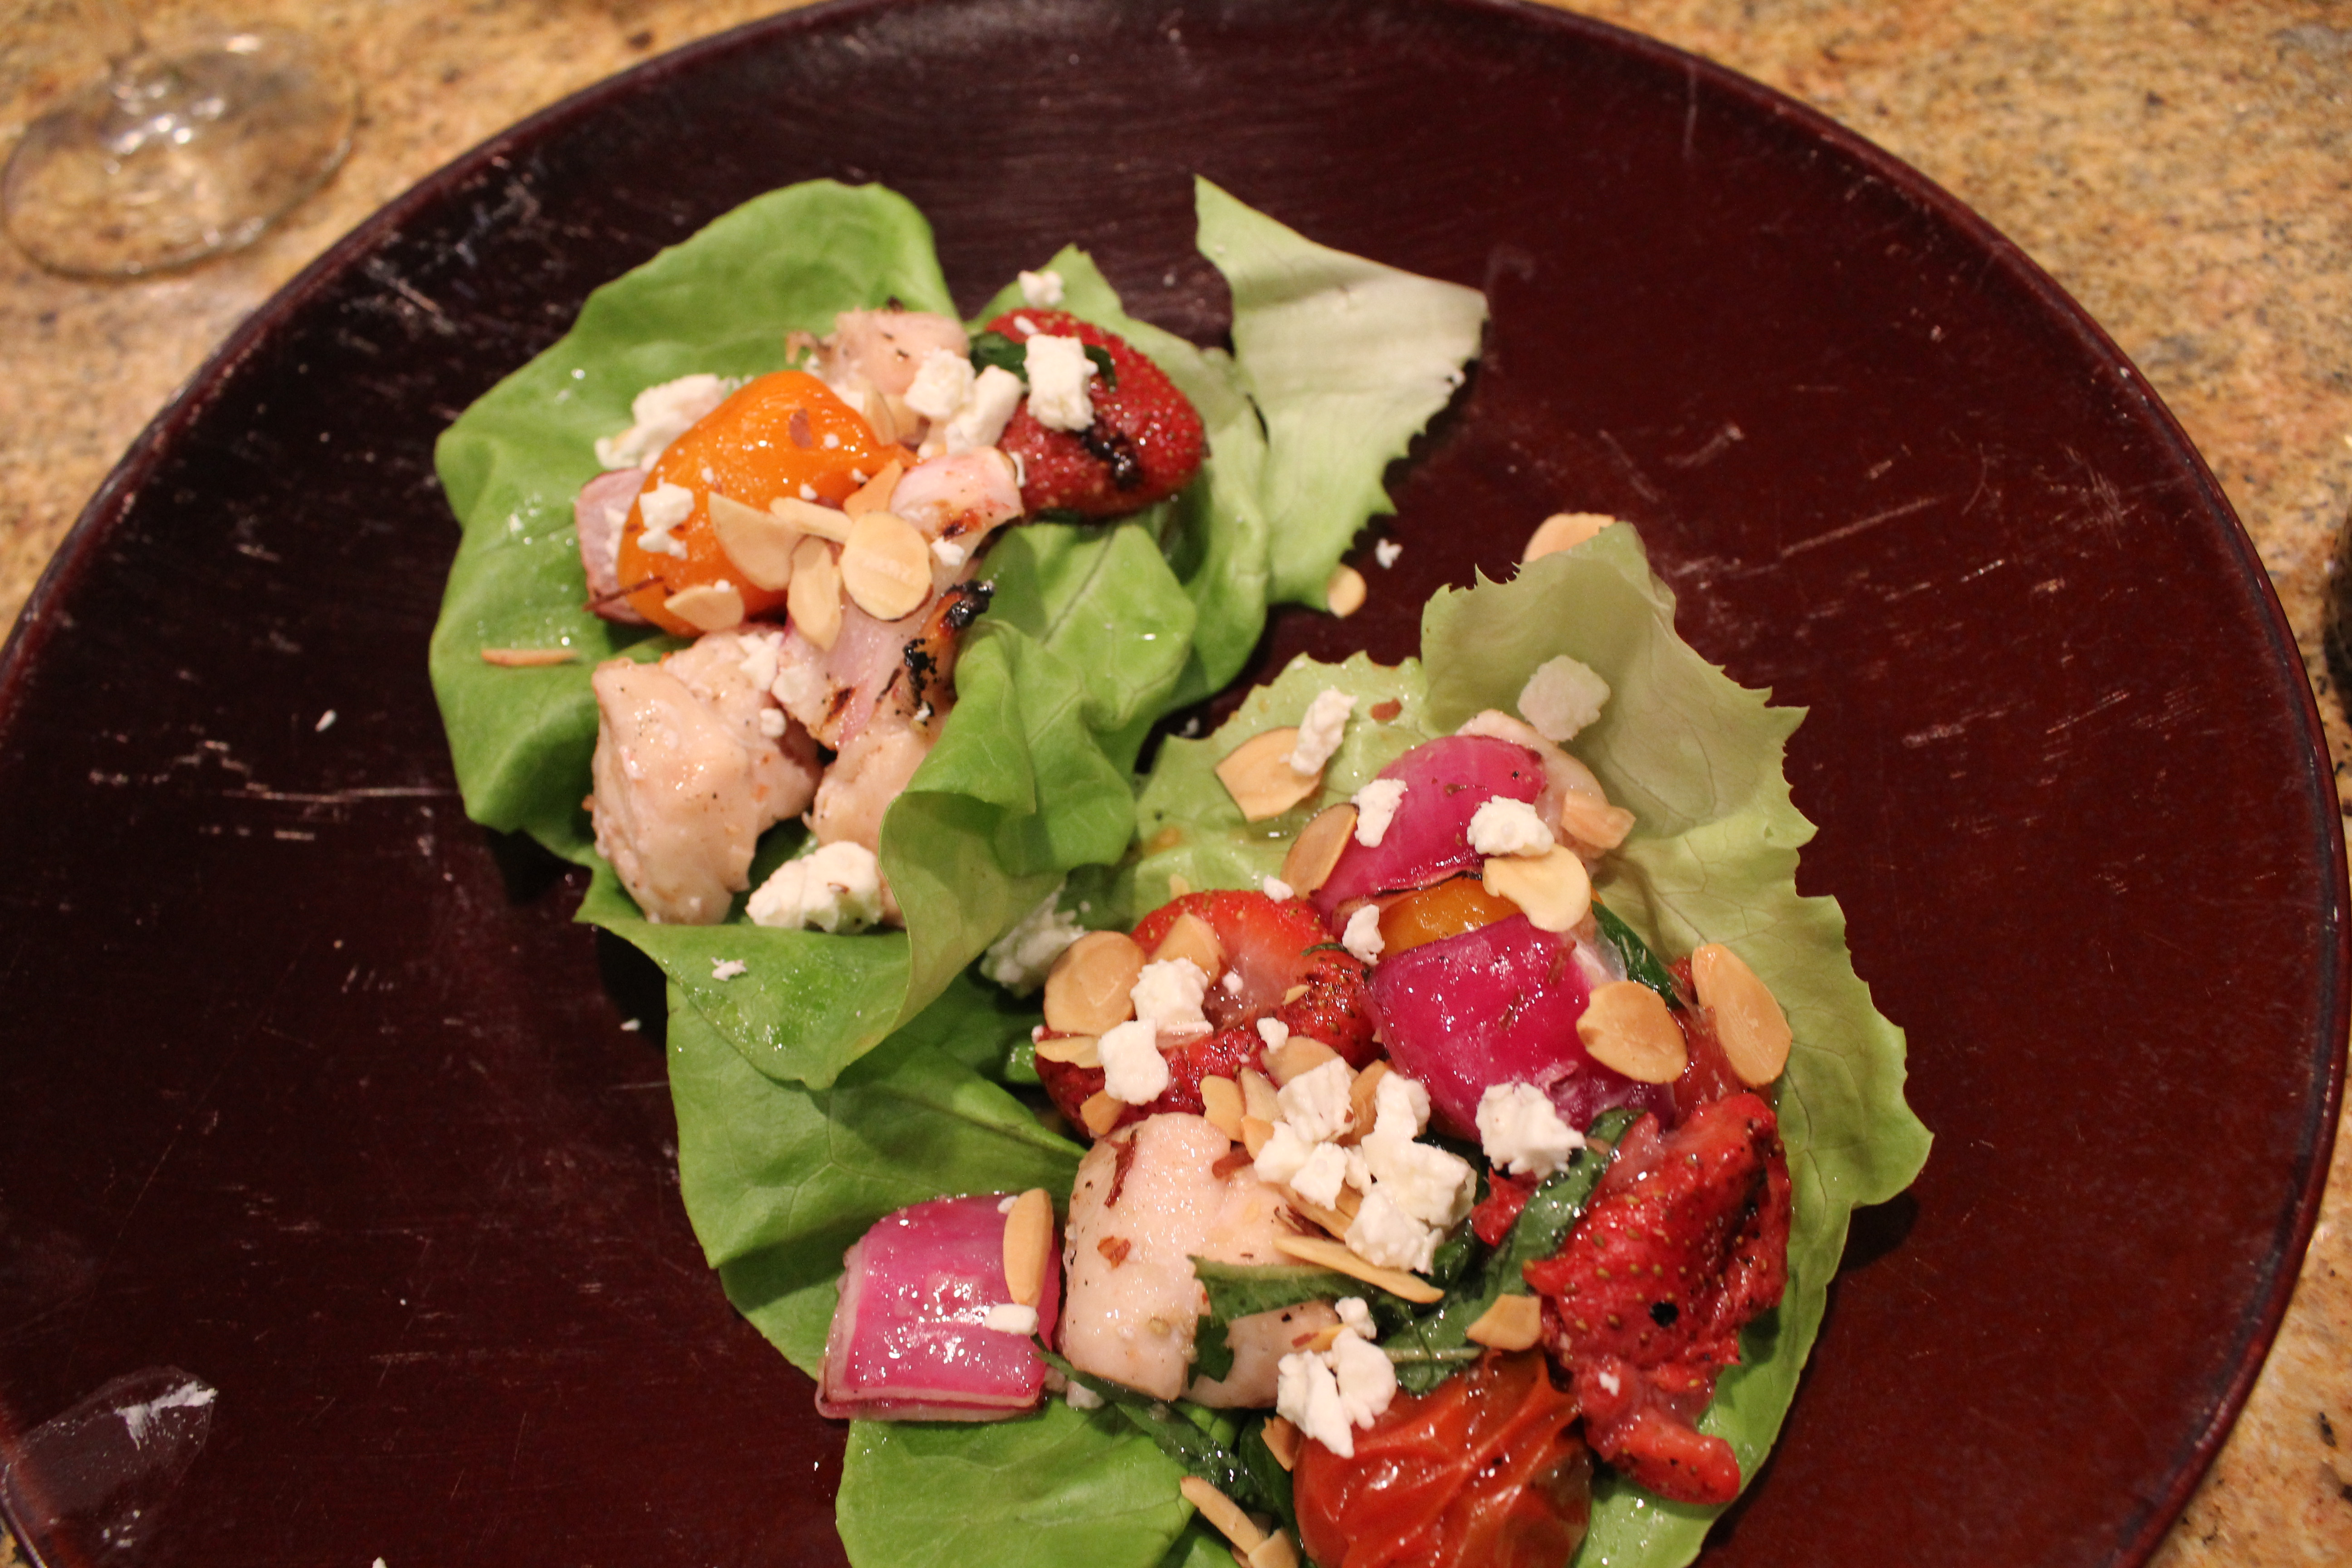 Recipe Monday: Grilled Strawberry, Tomato, and Chicken Wraps